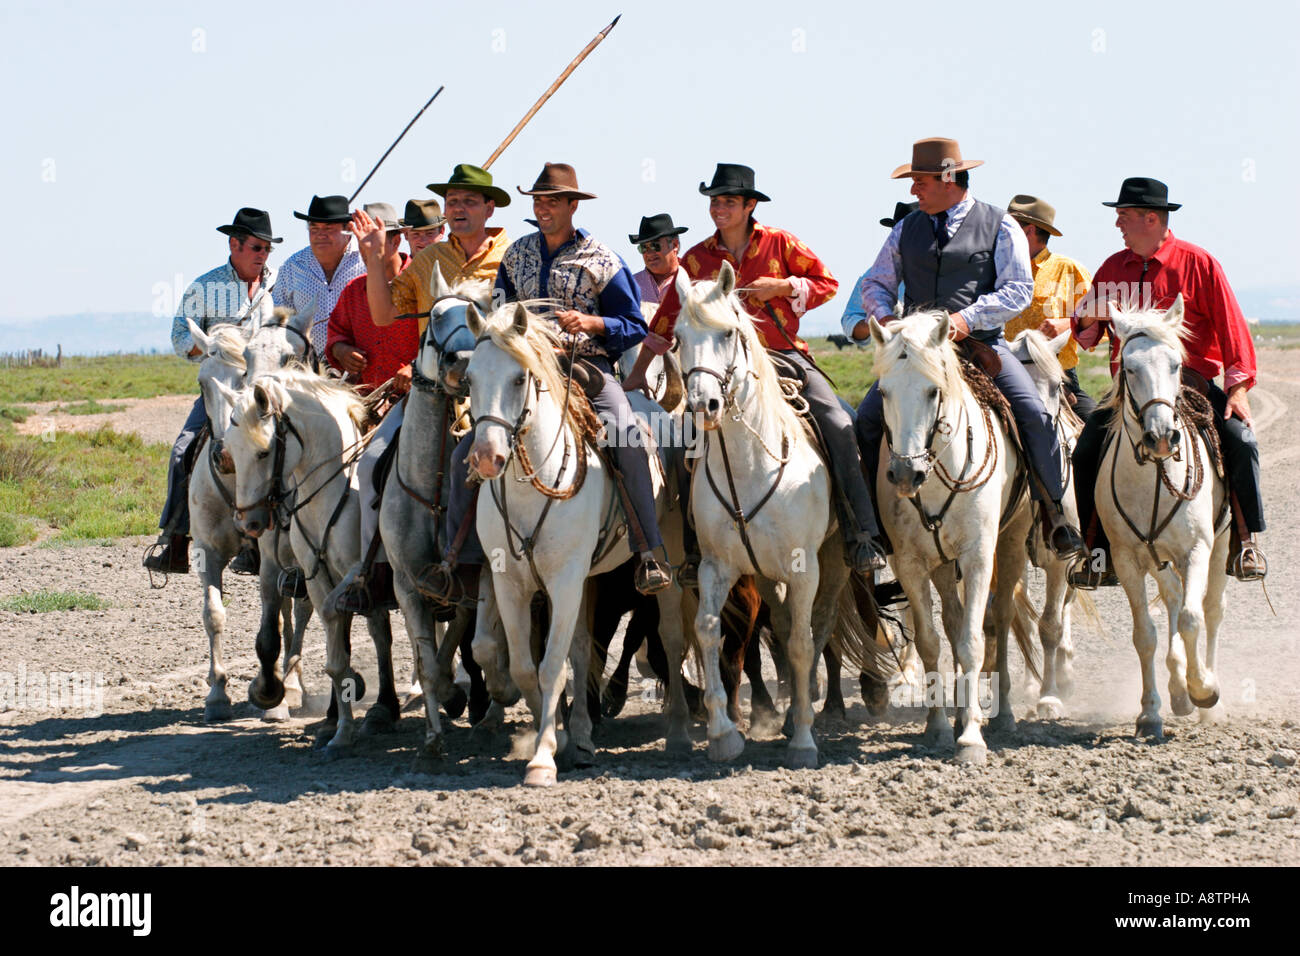 c762c4ea311 Guardians in Camargue France Stock Photo  6957209 - Alamy